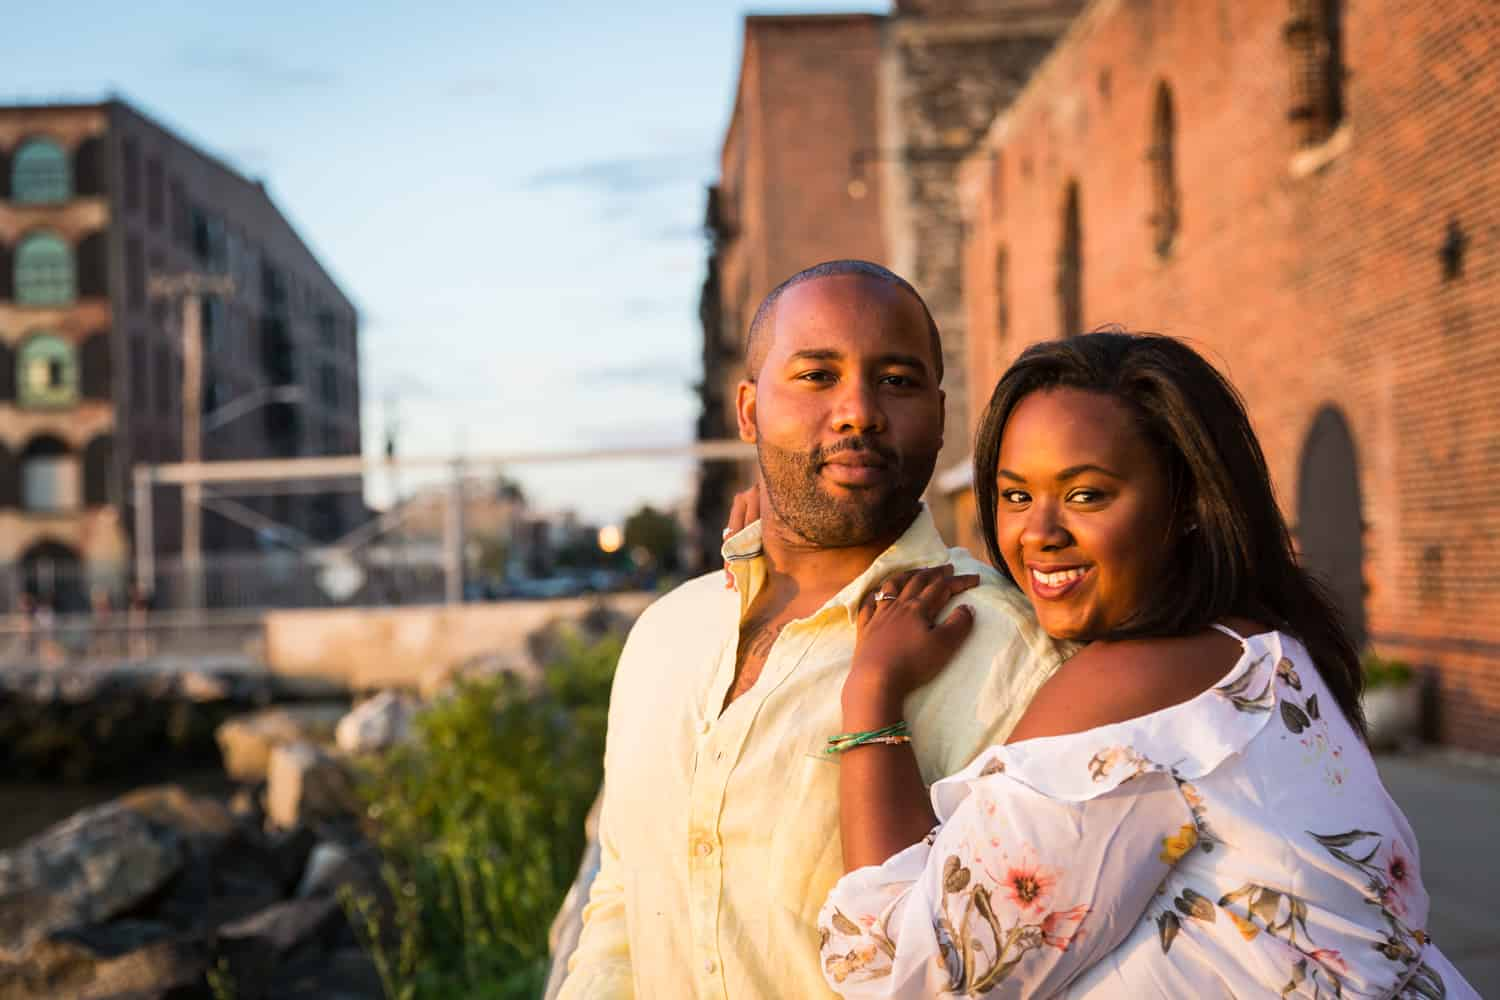 Couple in front of brick building in Red Hook for an article on creative engagement photo shoot ideas